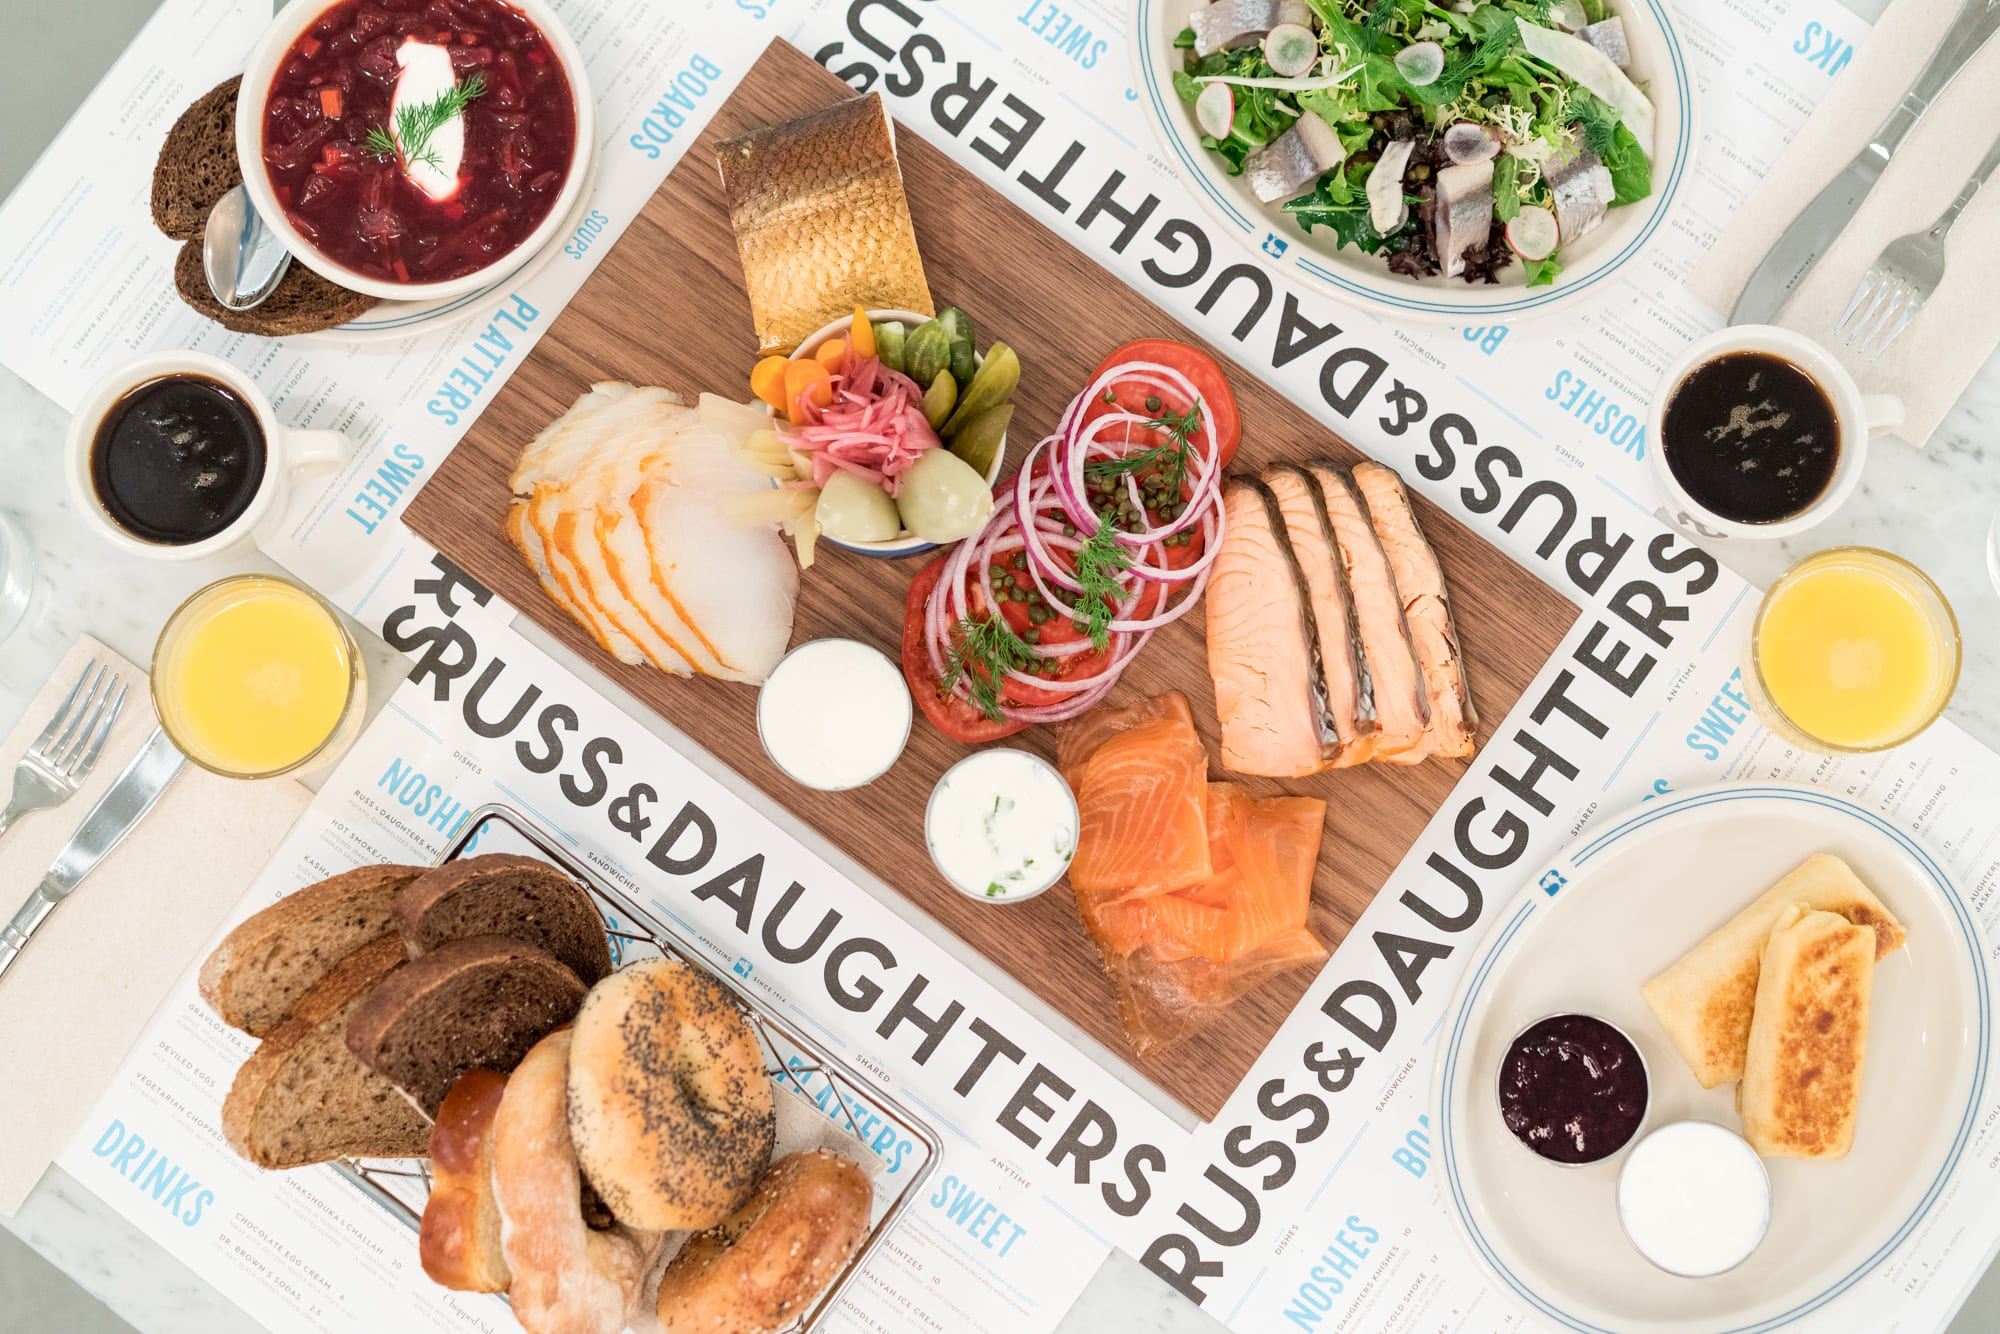 Russ & Daughters at the Jewish Museum Opens